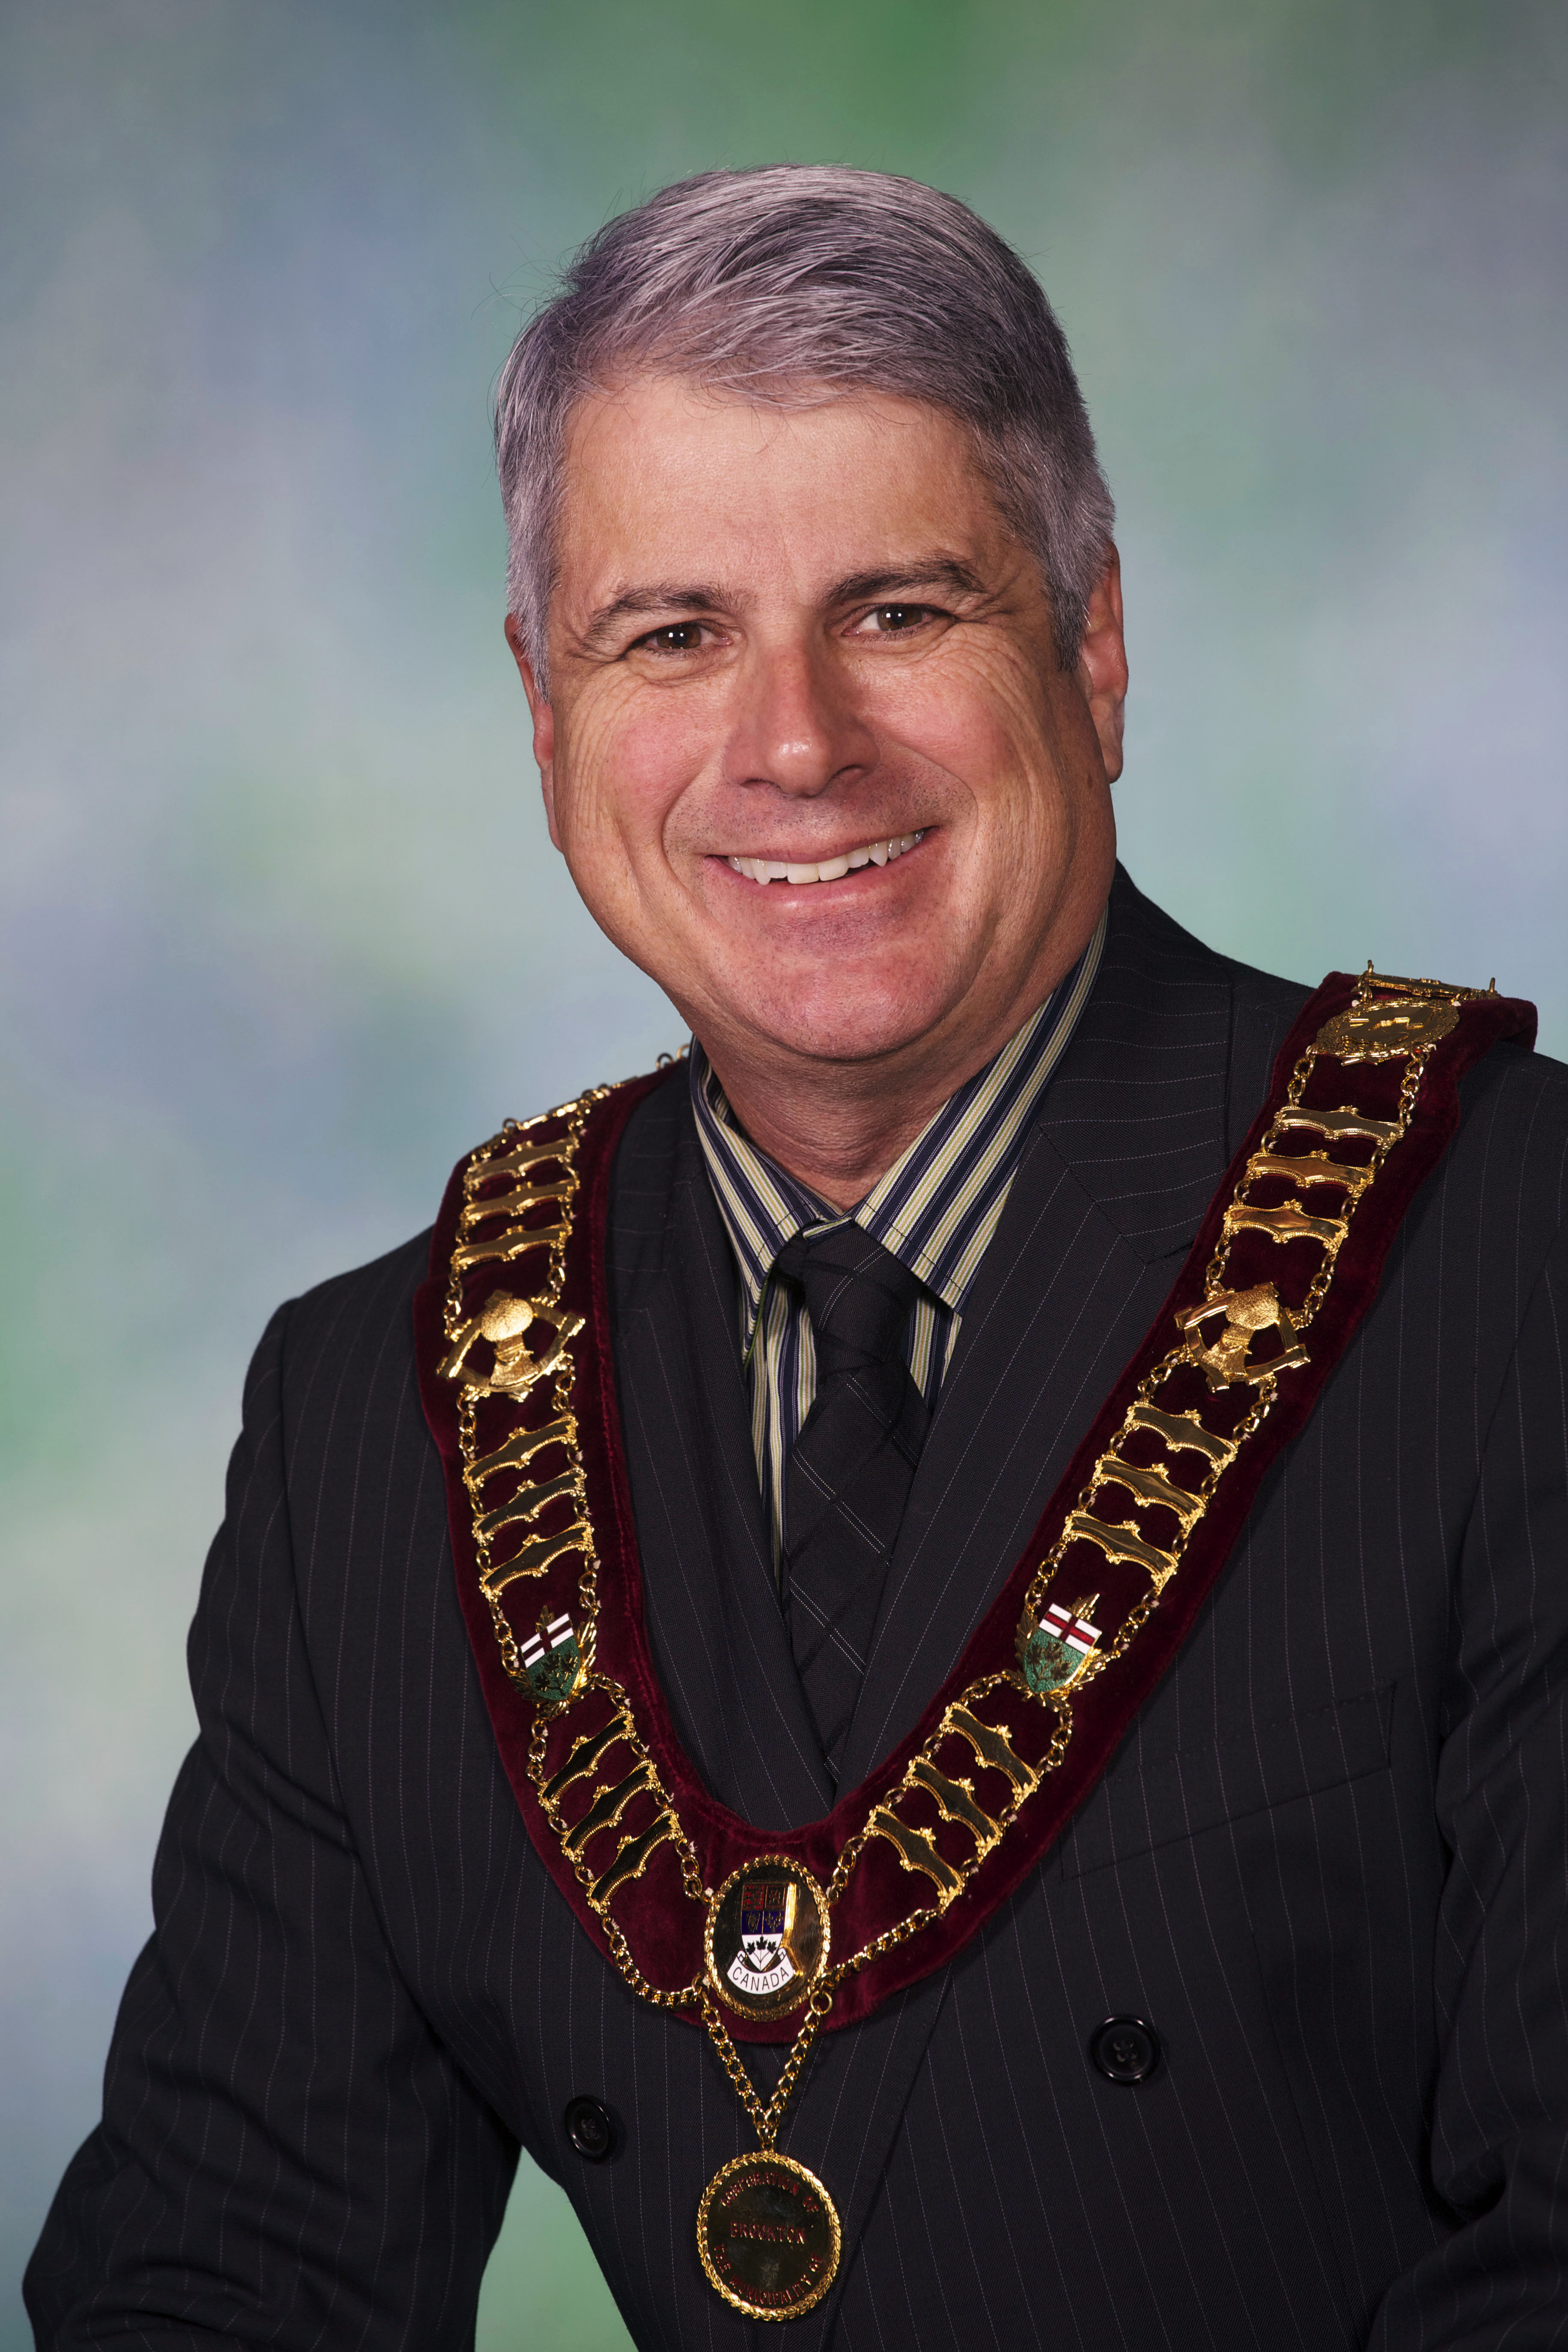 Mayor Chris Peabody